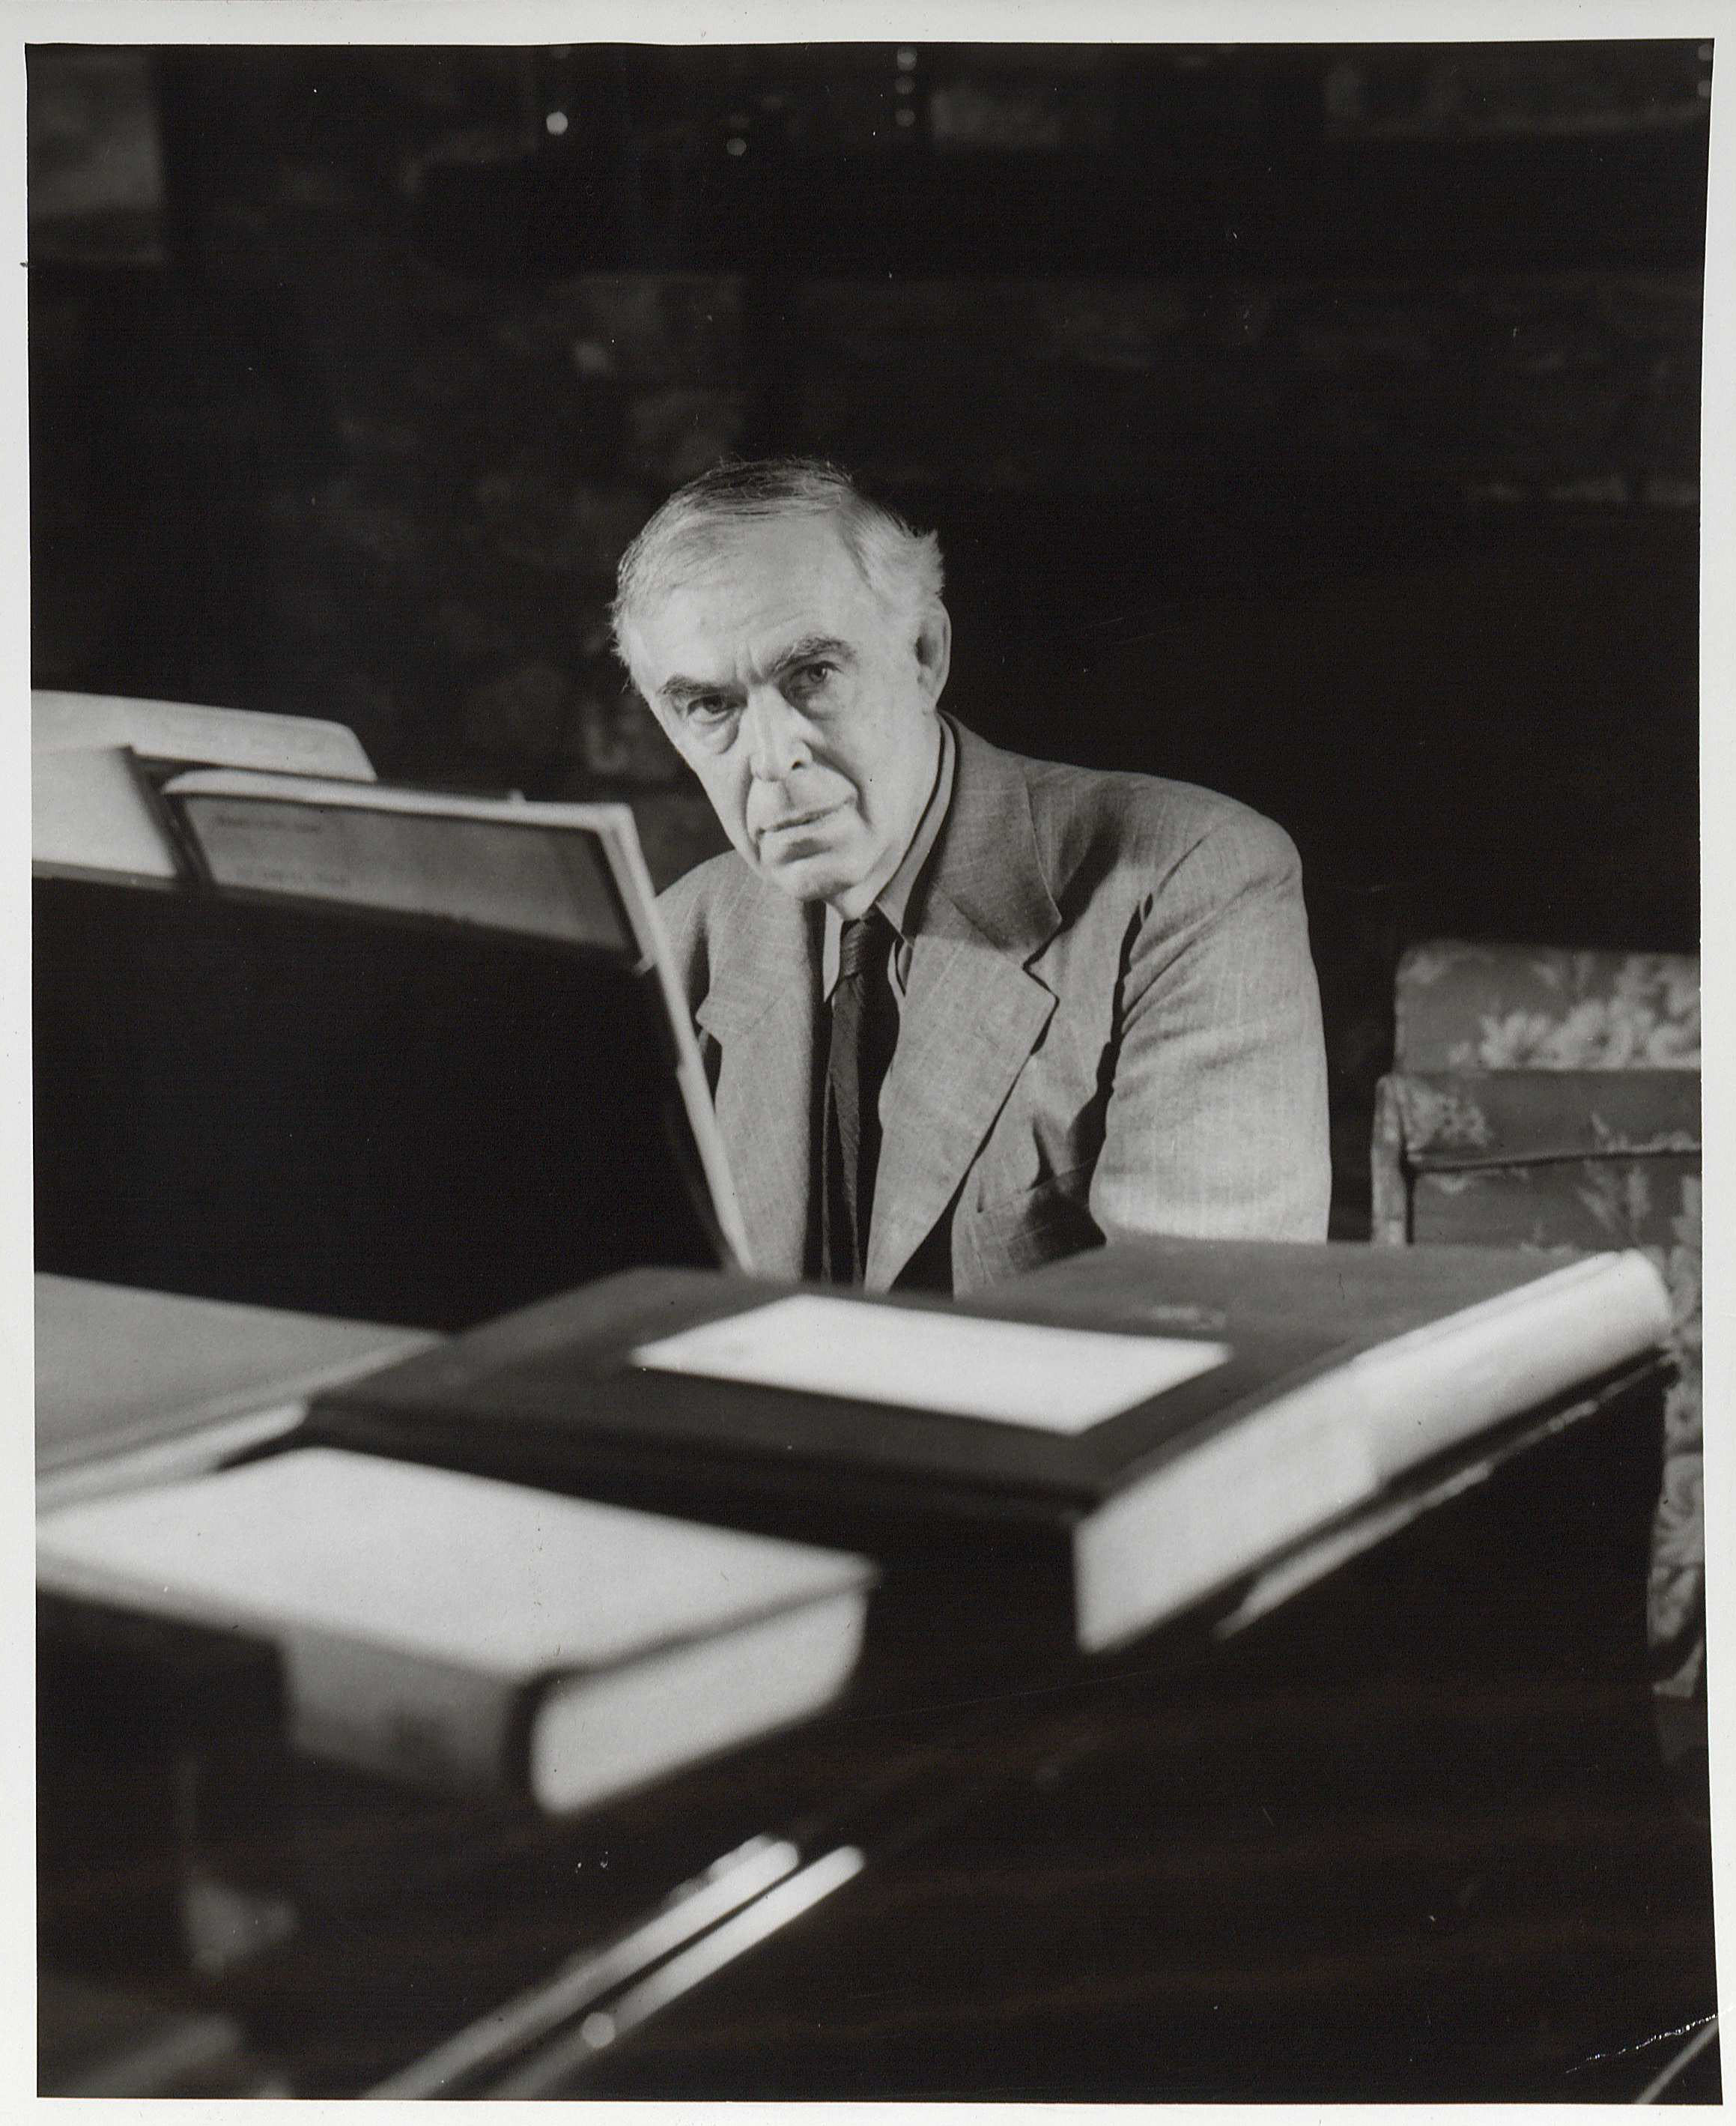 Portrait of John Powell, undated. (Image by Caroline Newcomb)